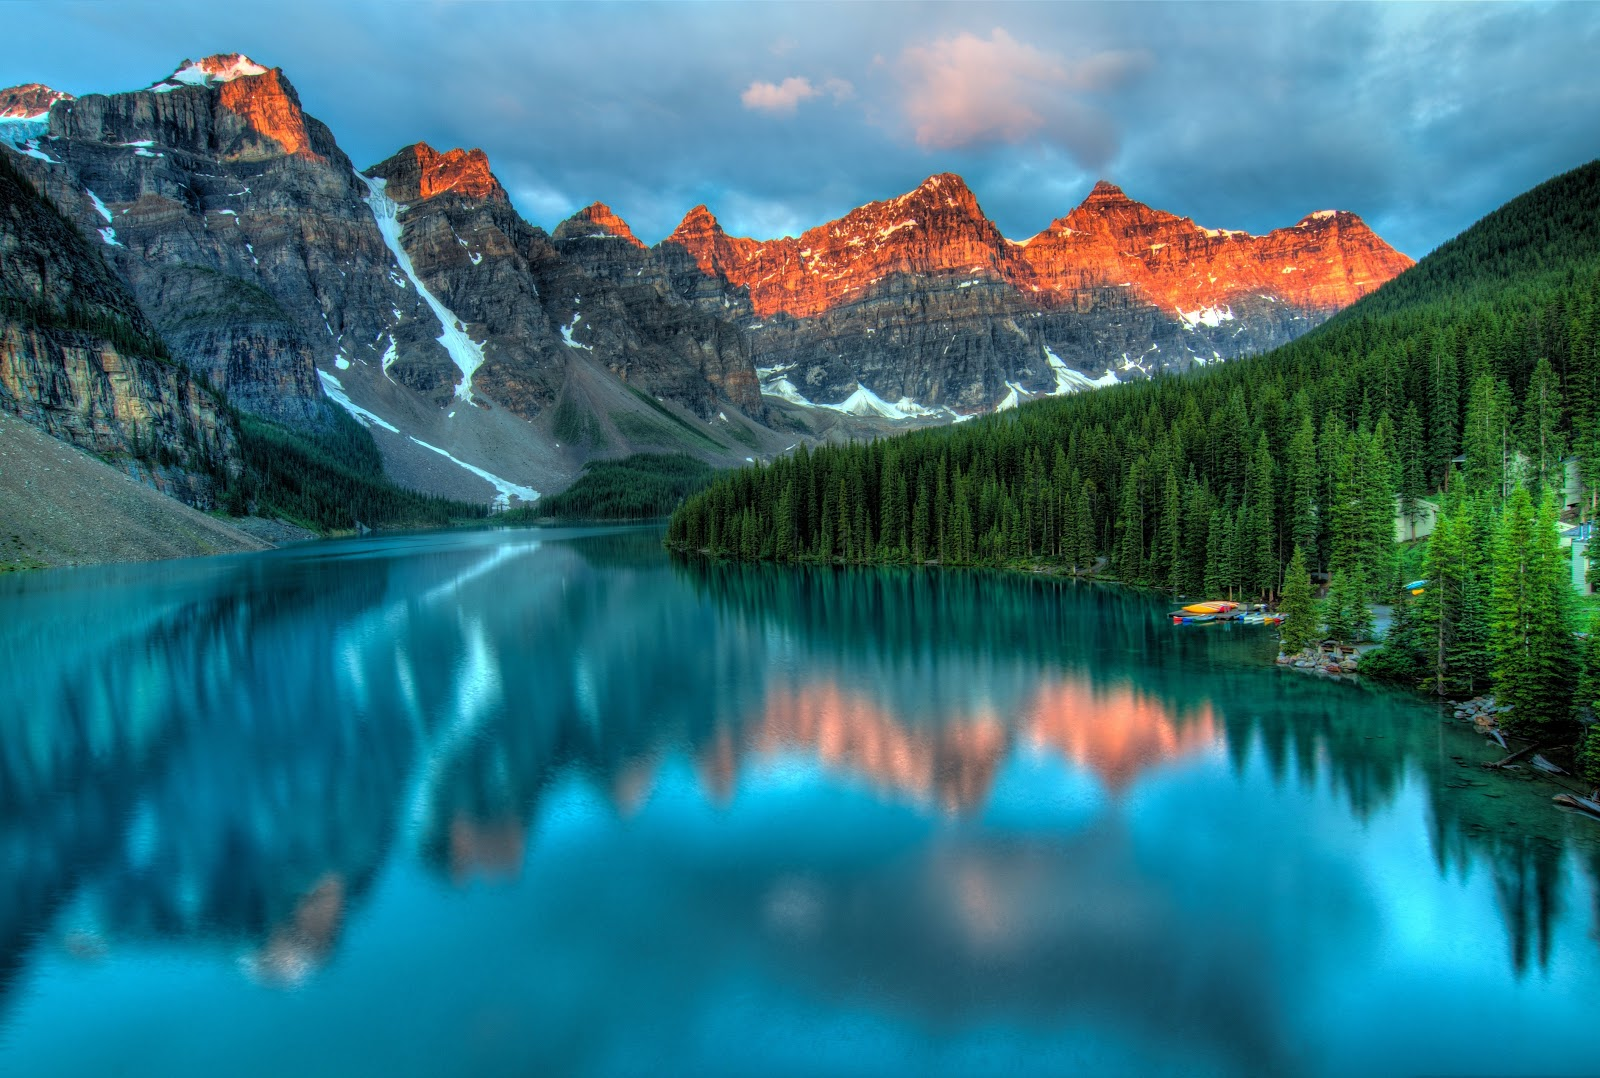 alberta-amazing-attraction-banff-scenery-images